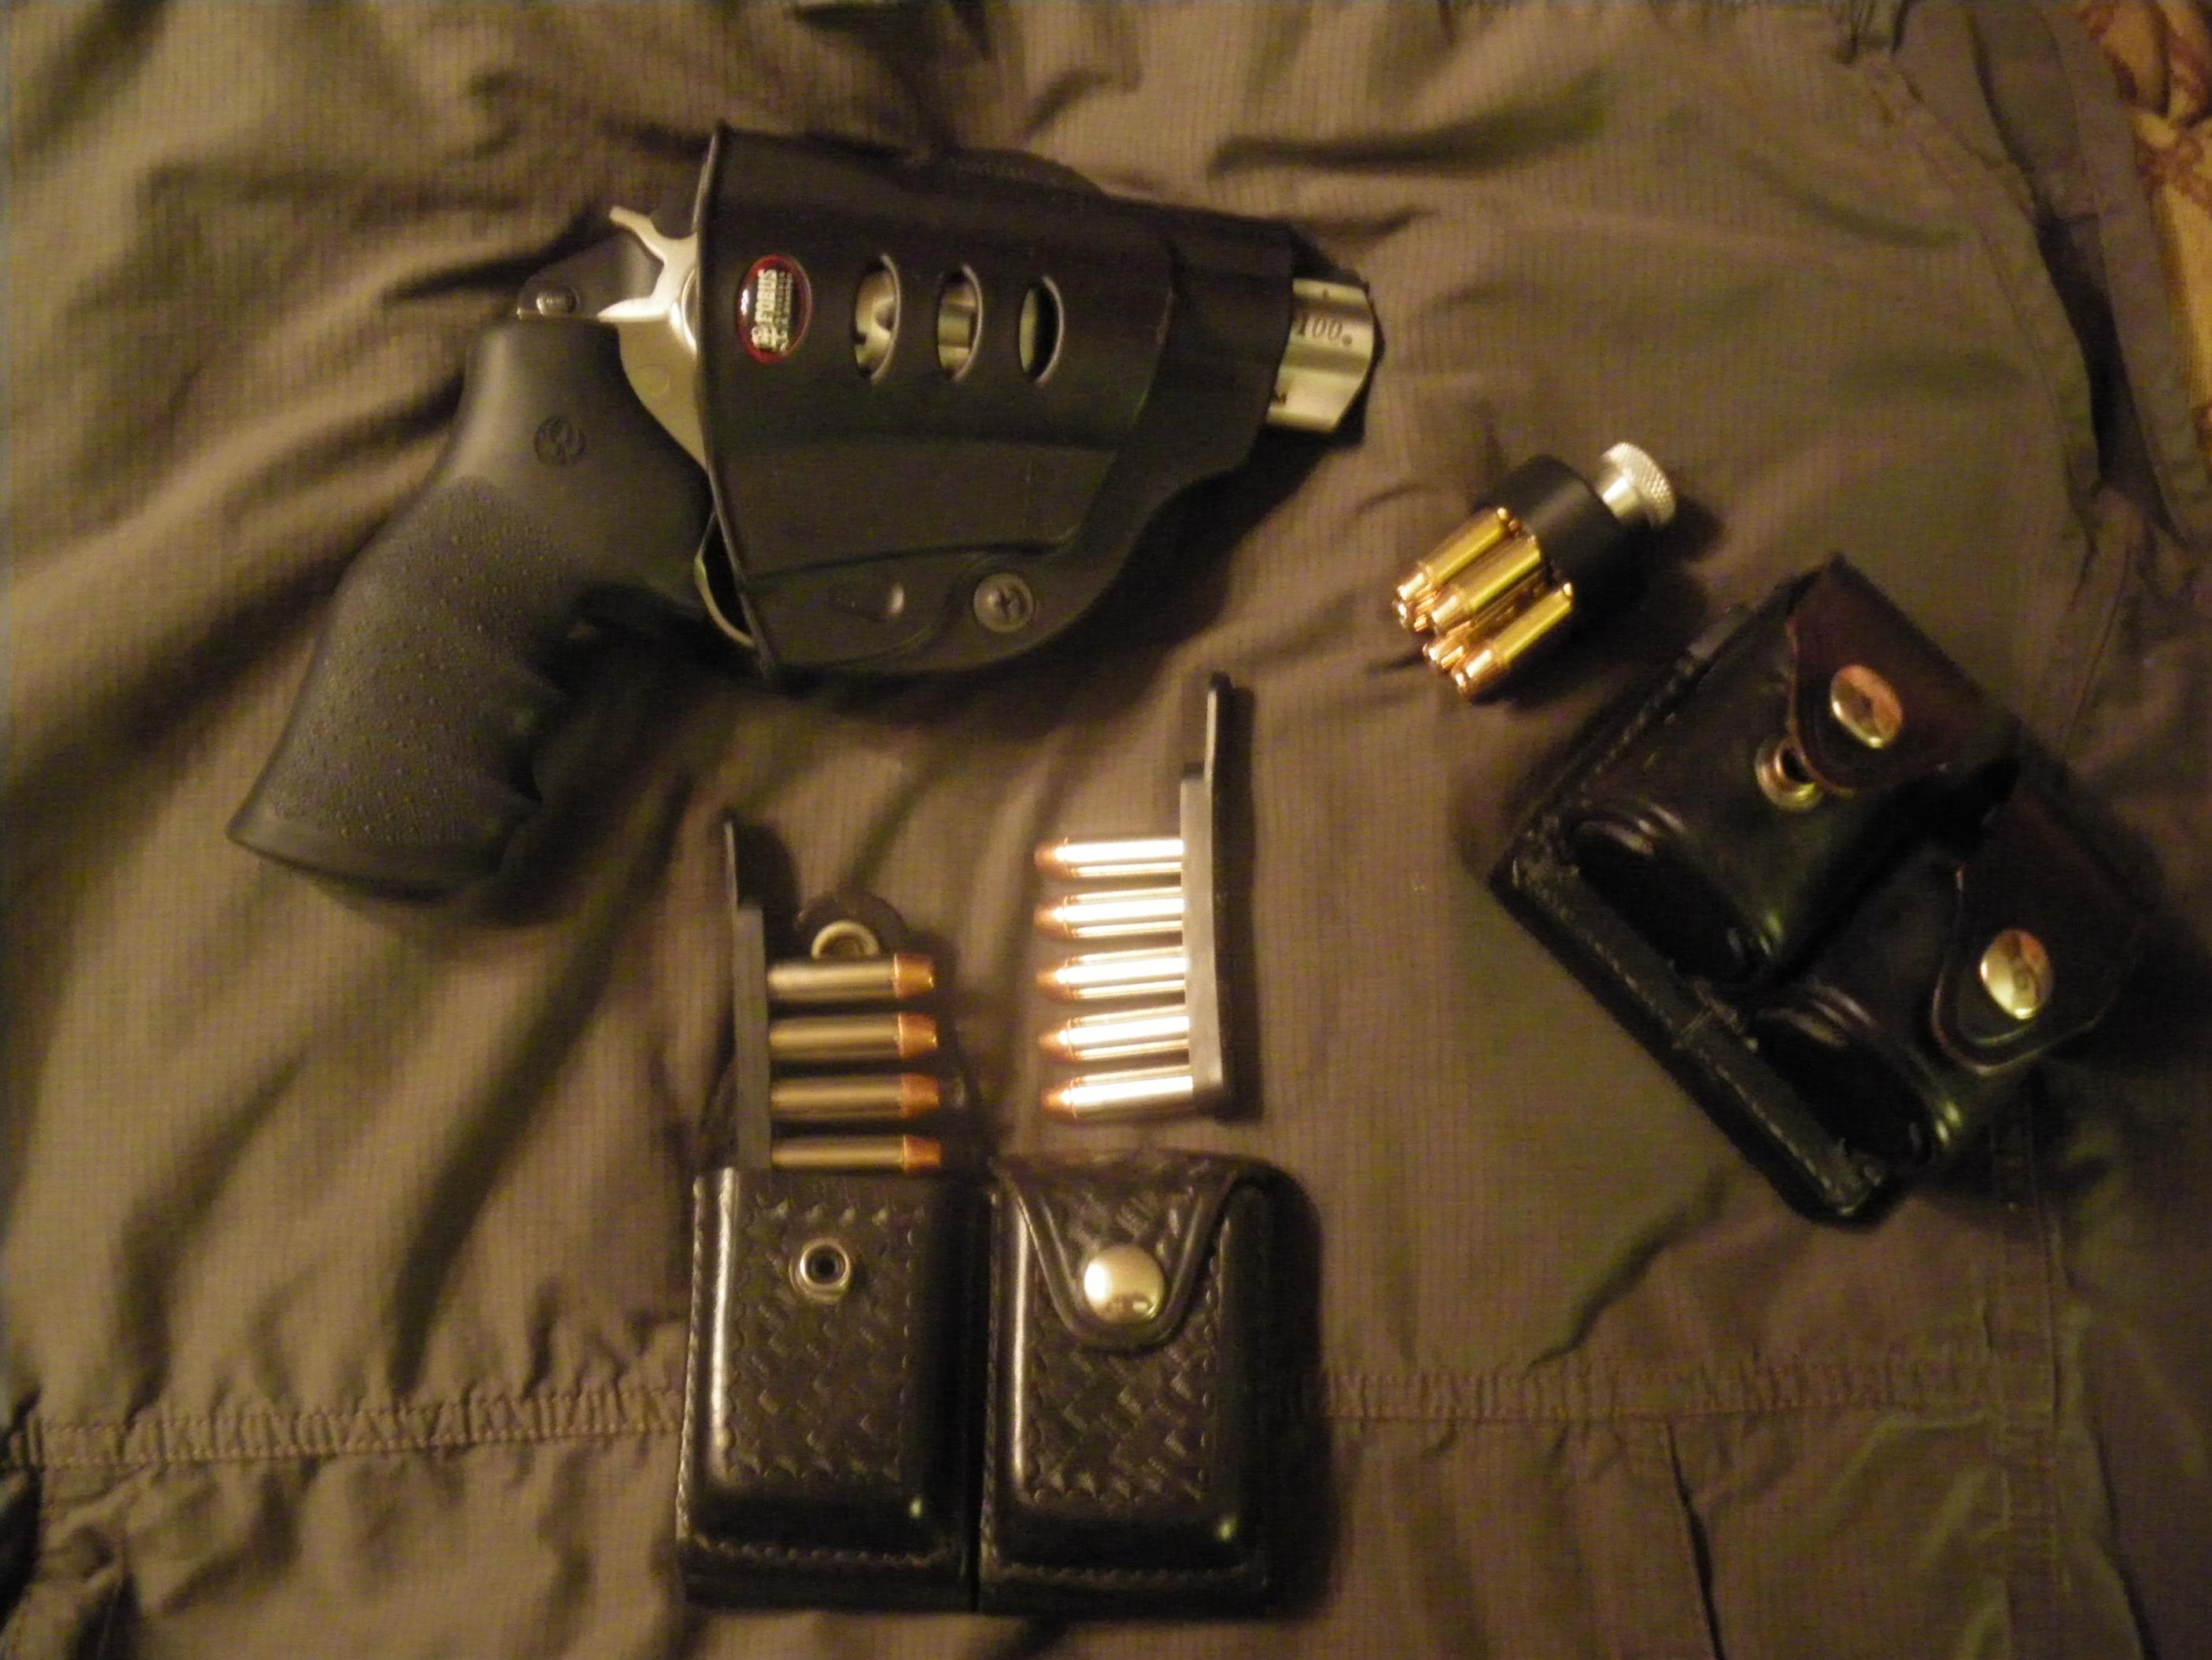 A New Sixgun and some old Don Hume leather....-2012-08-19-08.05.41.jpg